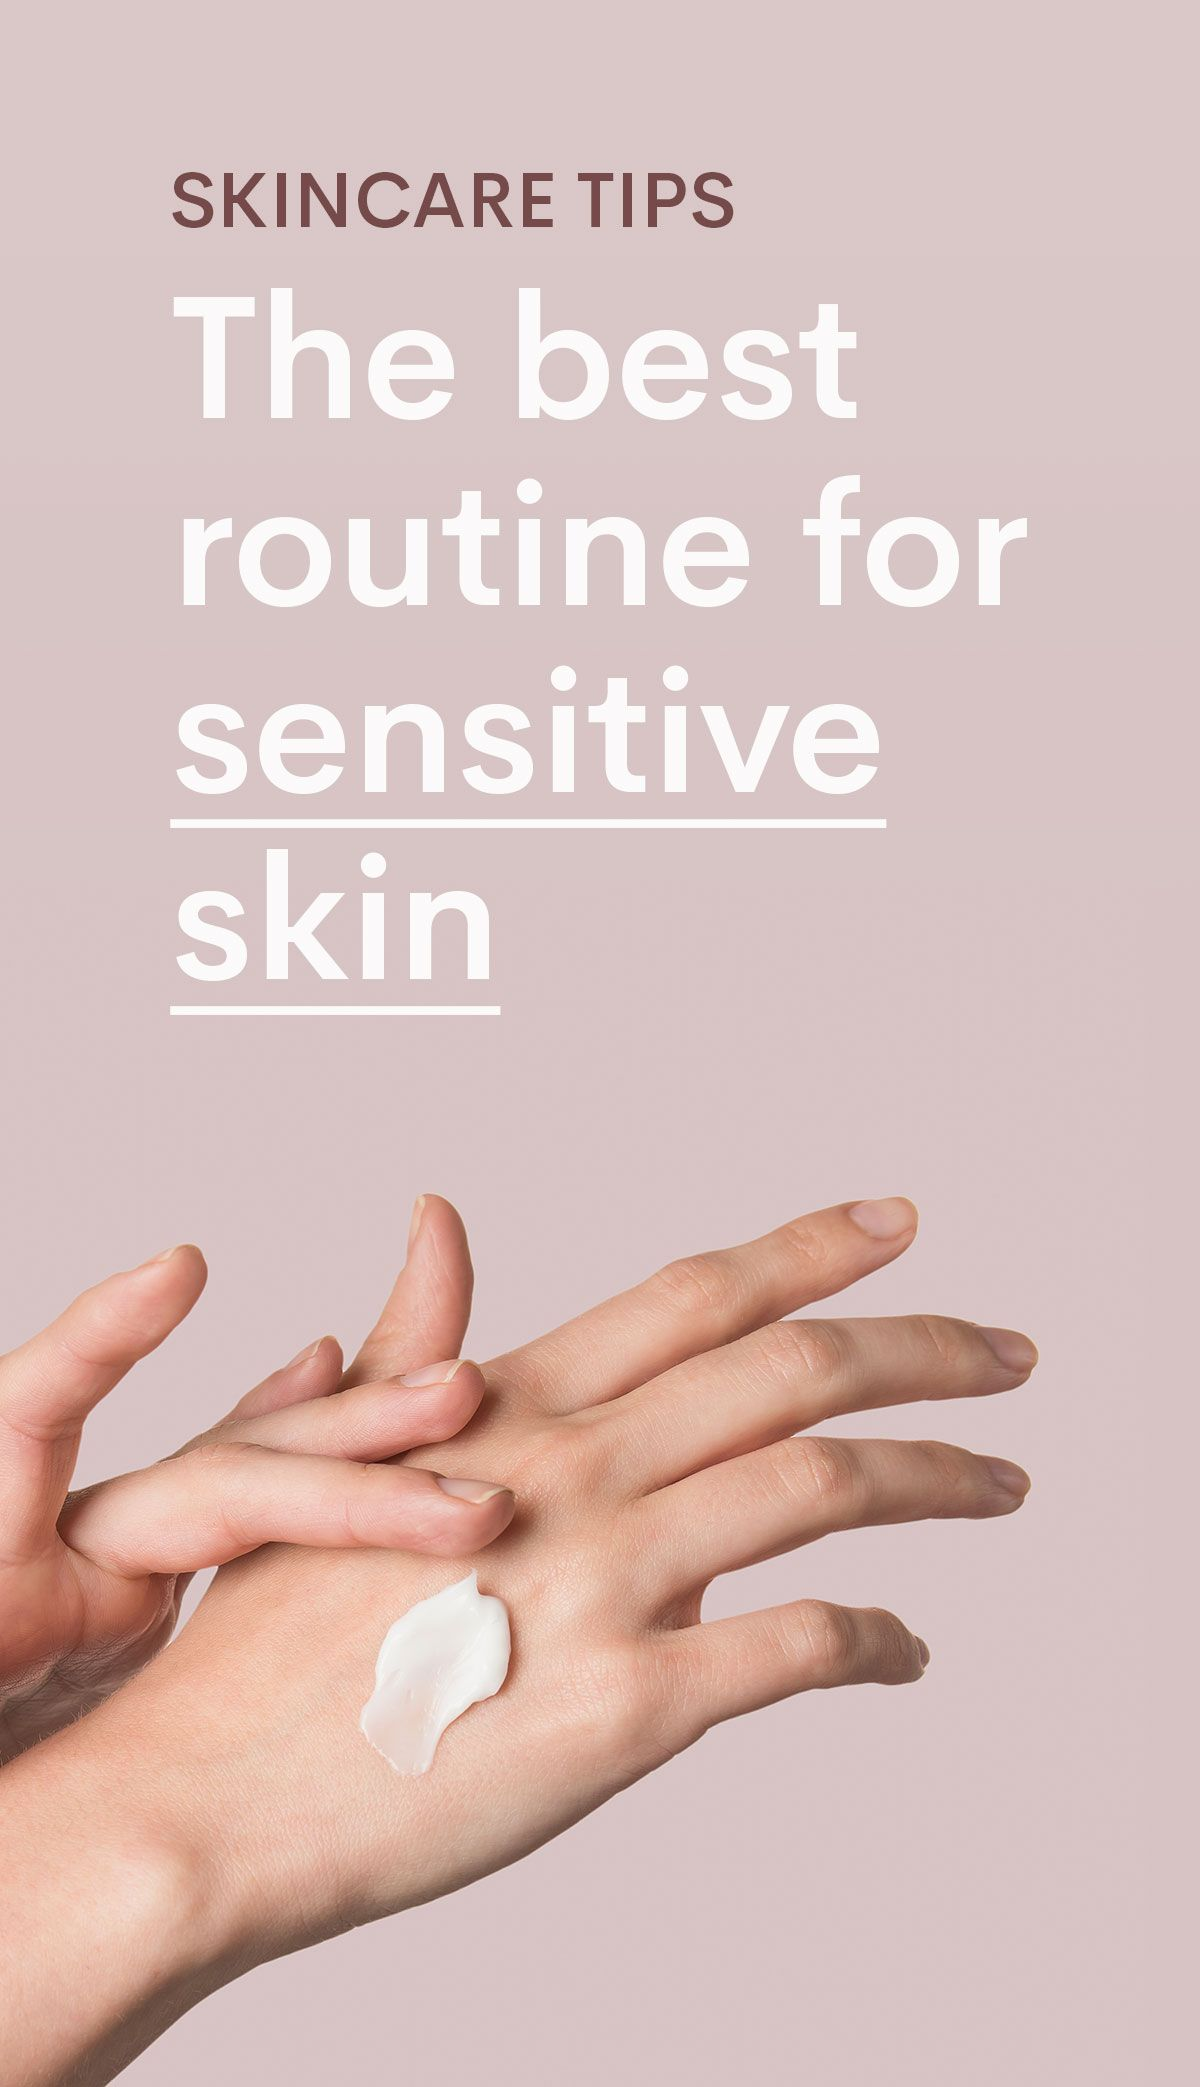 Sensitive Skin Tips Symptoms And How To Fix Sensitive Skin Sensitive Skin Care Routine Sensitive Skin Care